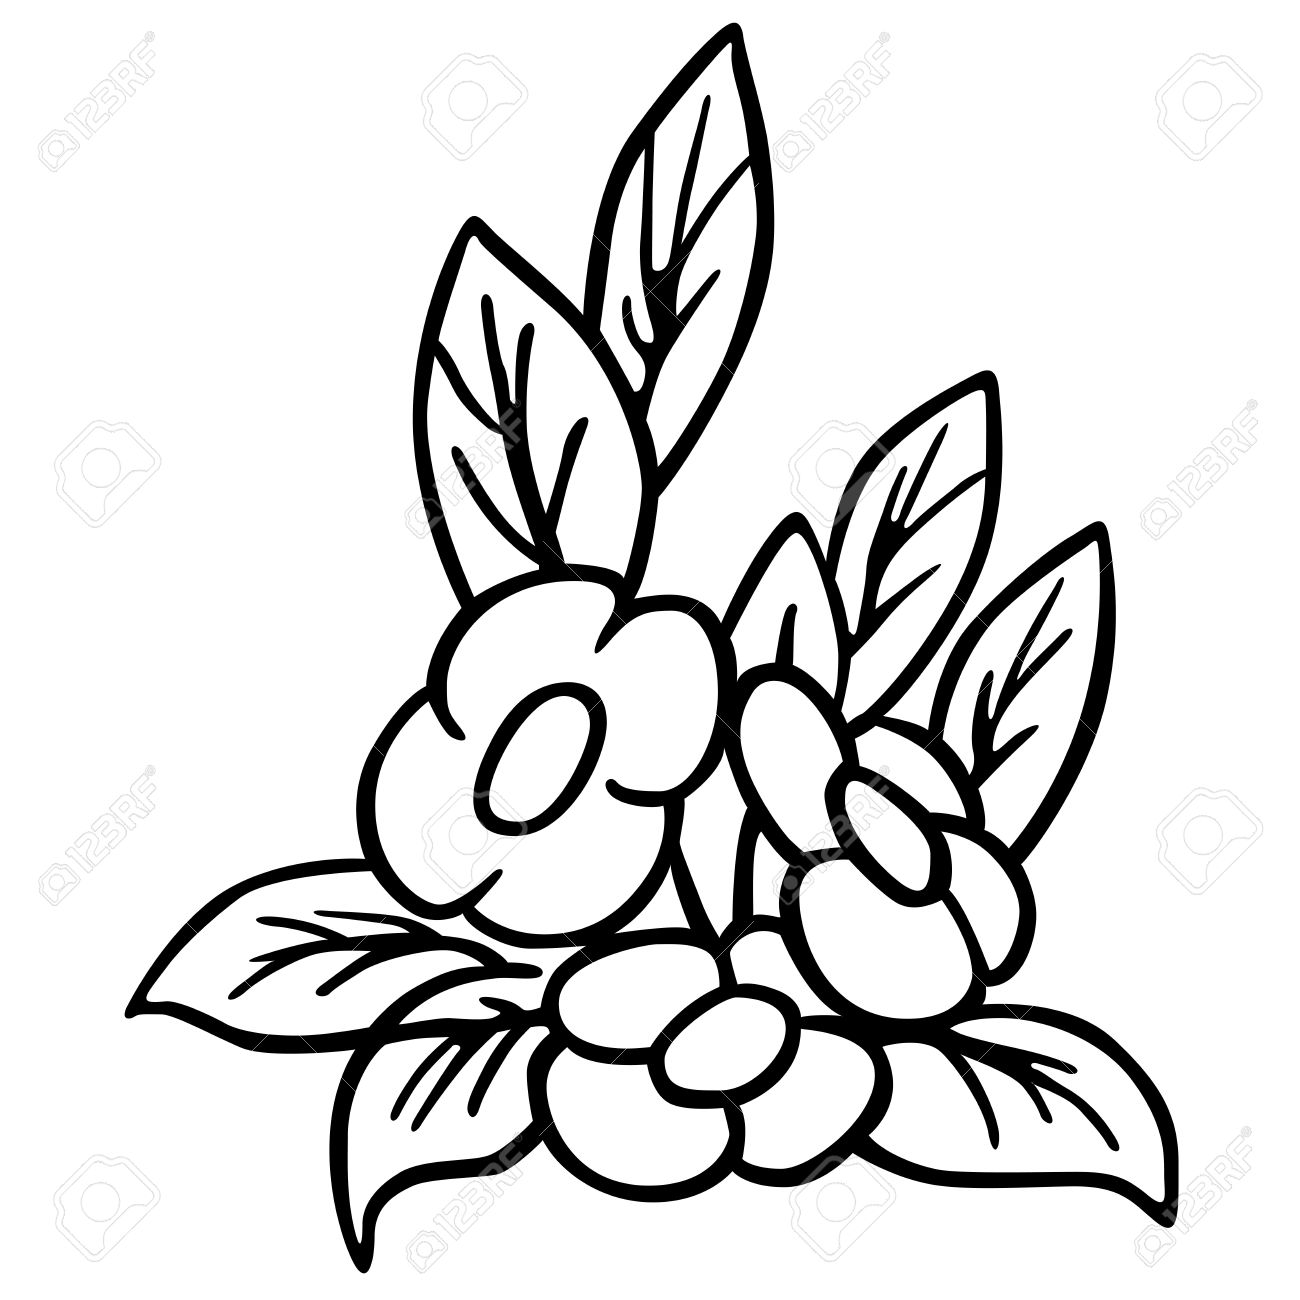 Flower Black And White Cartoon Illustration Royalty Free Cliparts